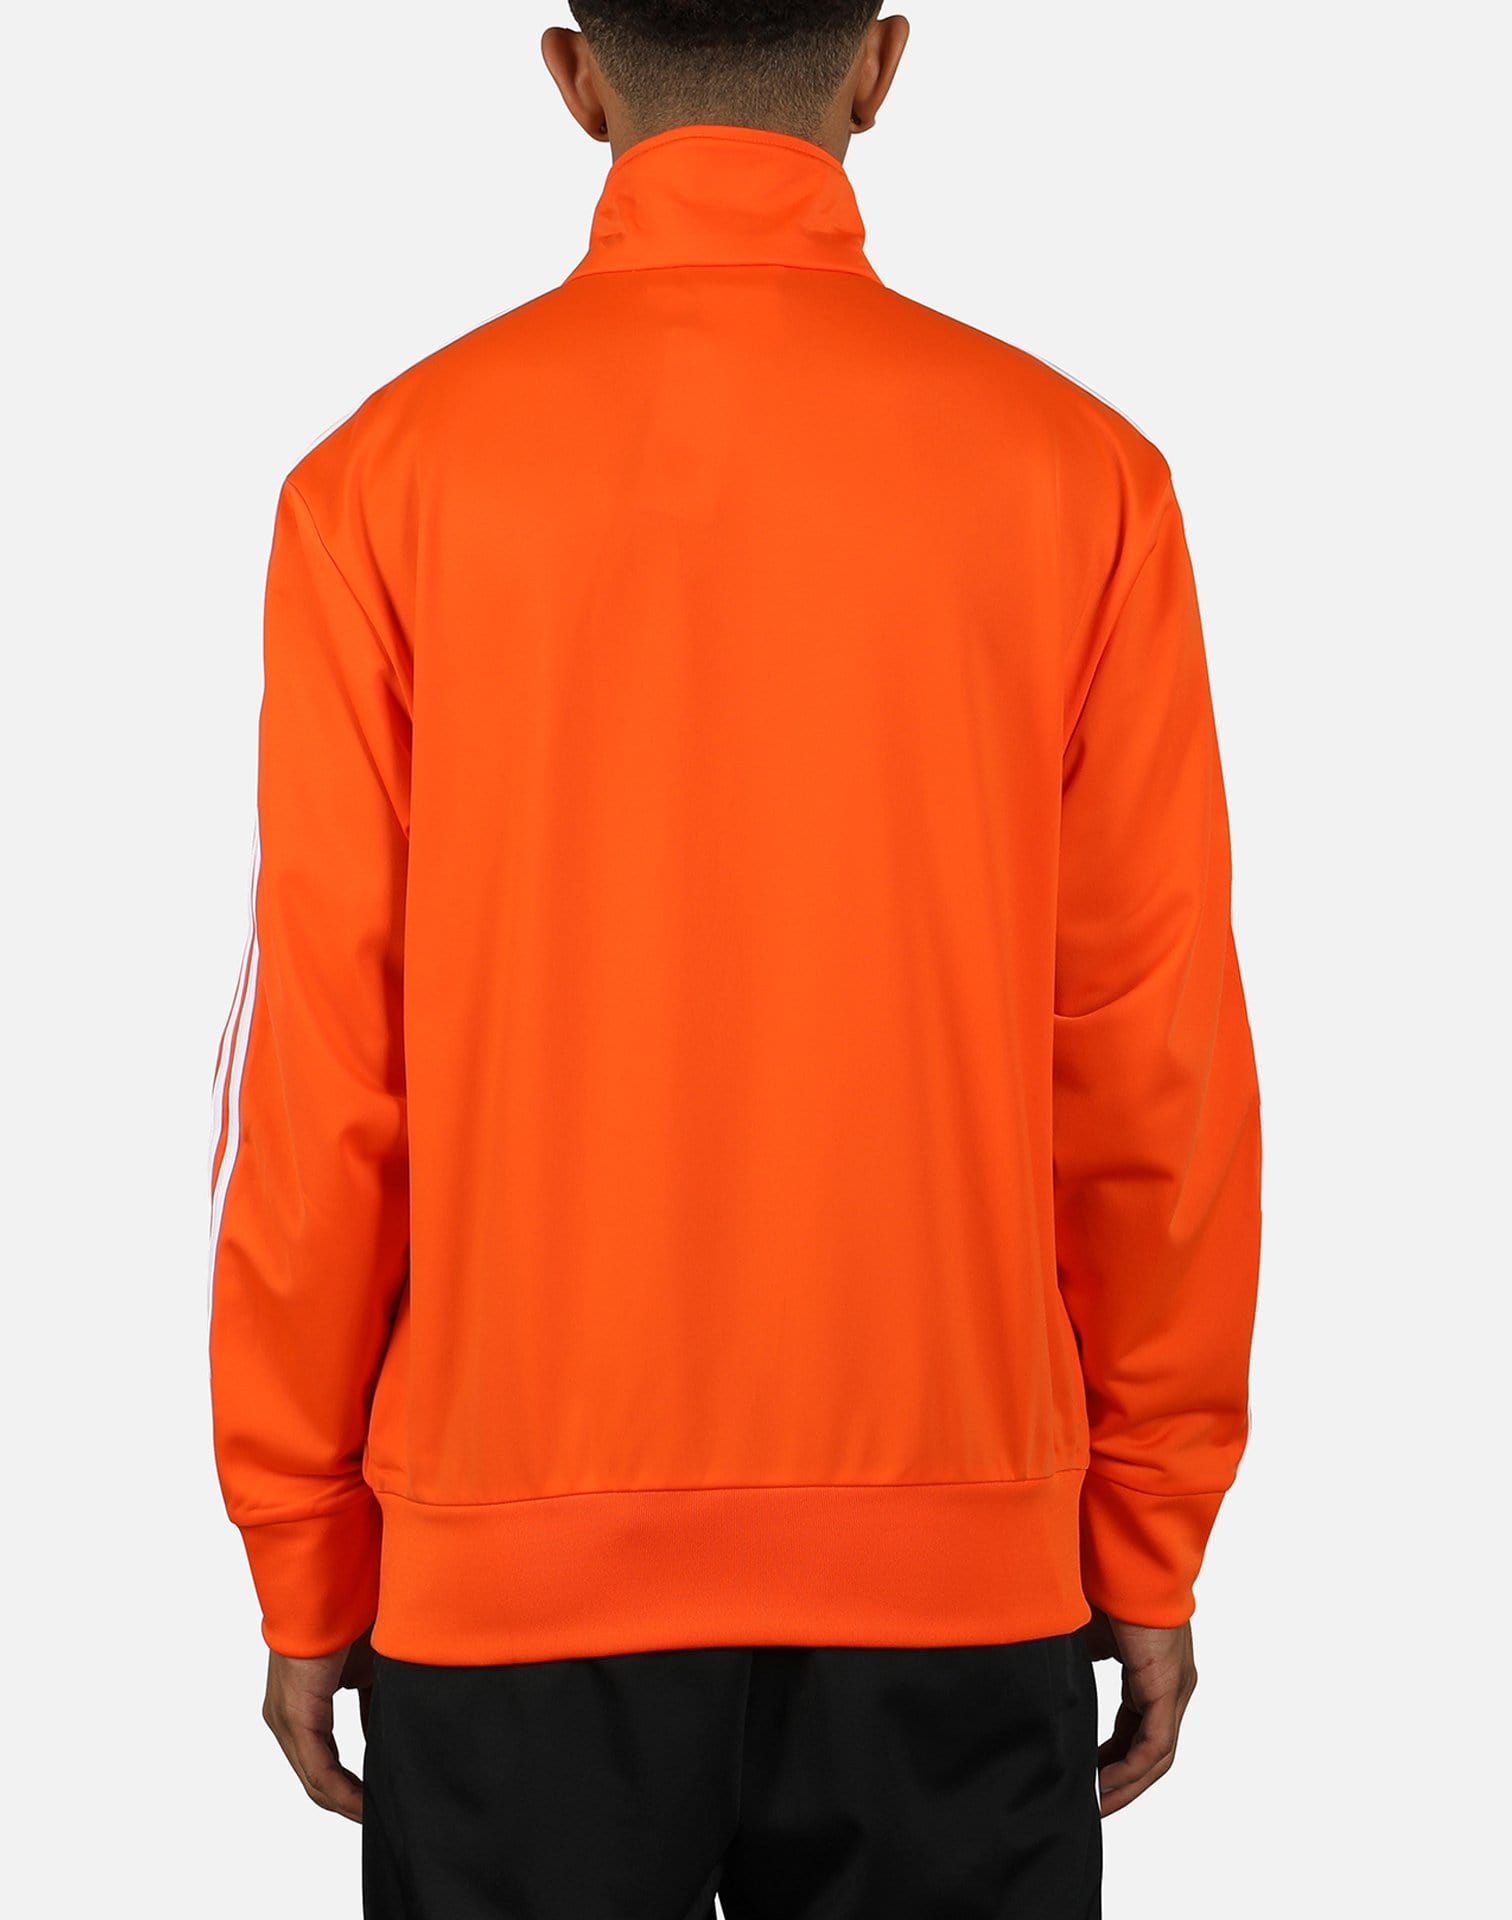 adidas Men's Firebird Track Jacket